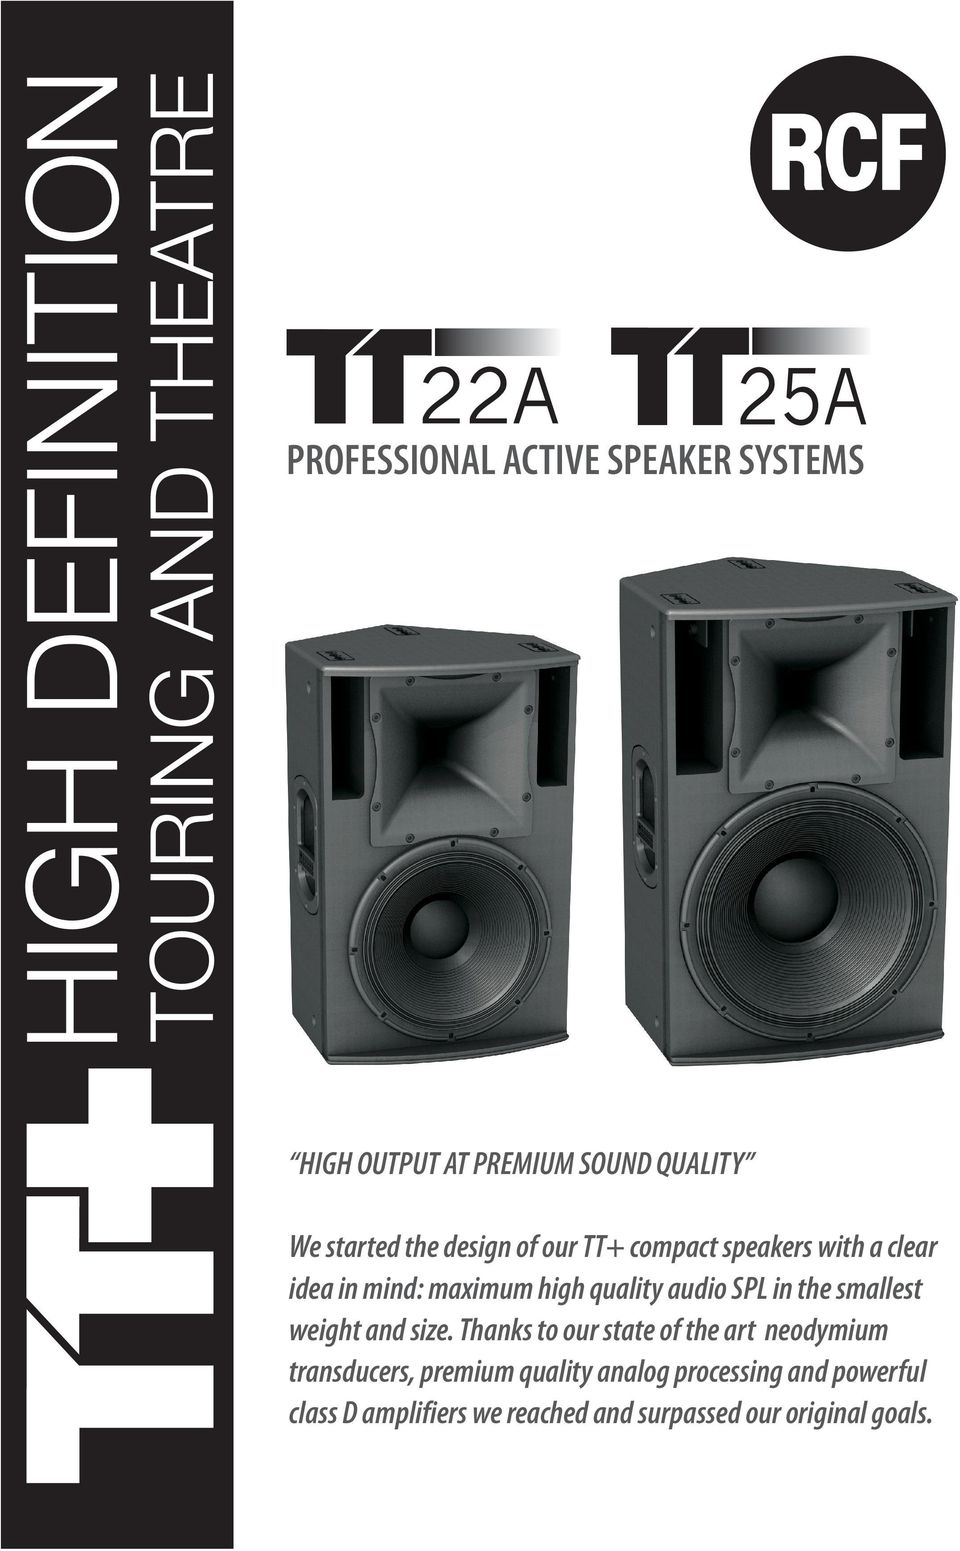 PROFESSIONAL ACTIVE SPEAKER SYSTEMS HIGH OUTPUT AT PREMIUM